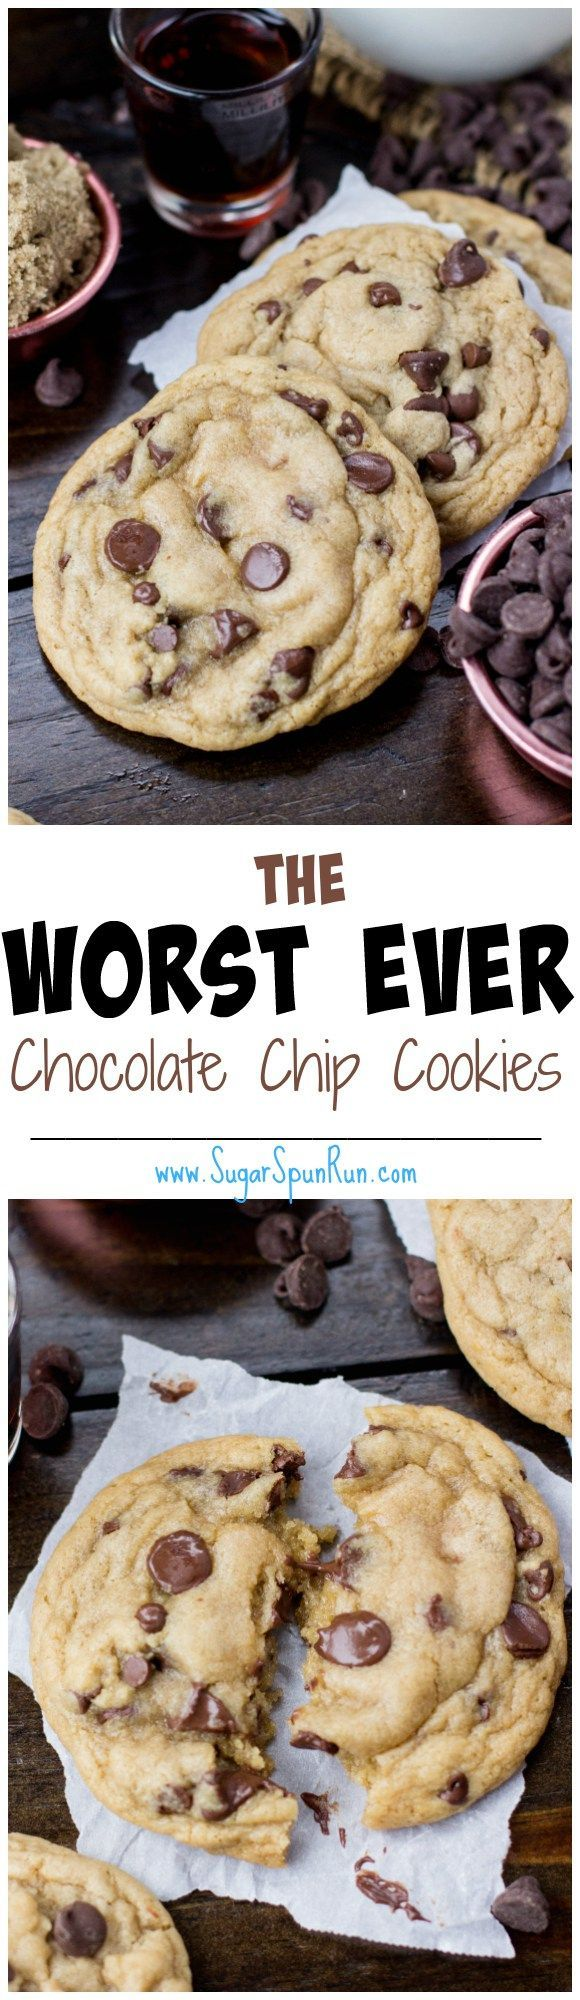 These chocolate chip cookies are perfection. And I love the secret ingredient!